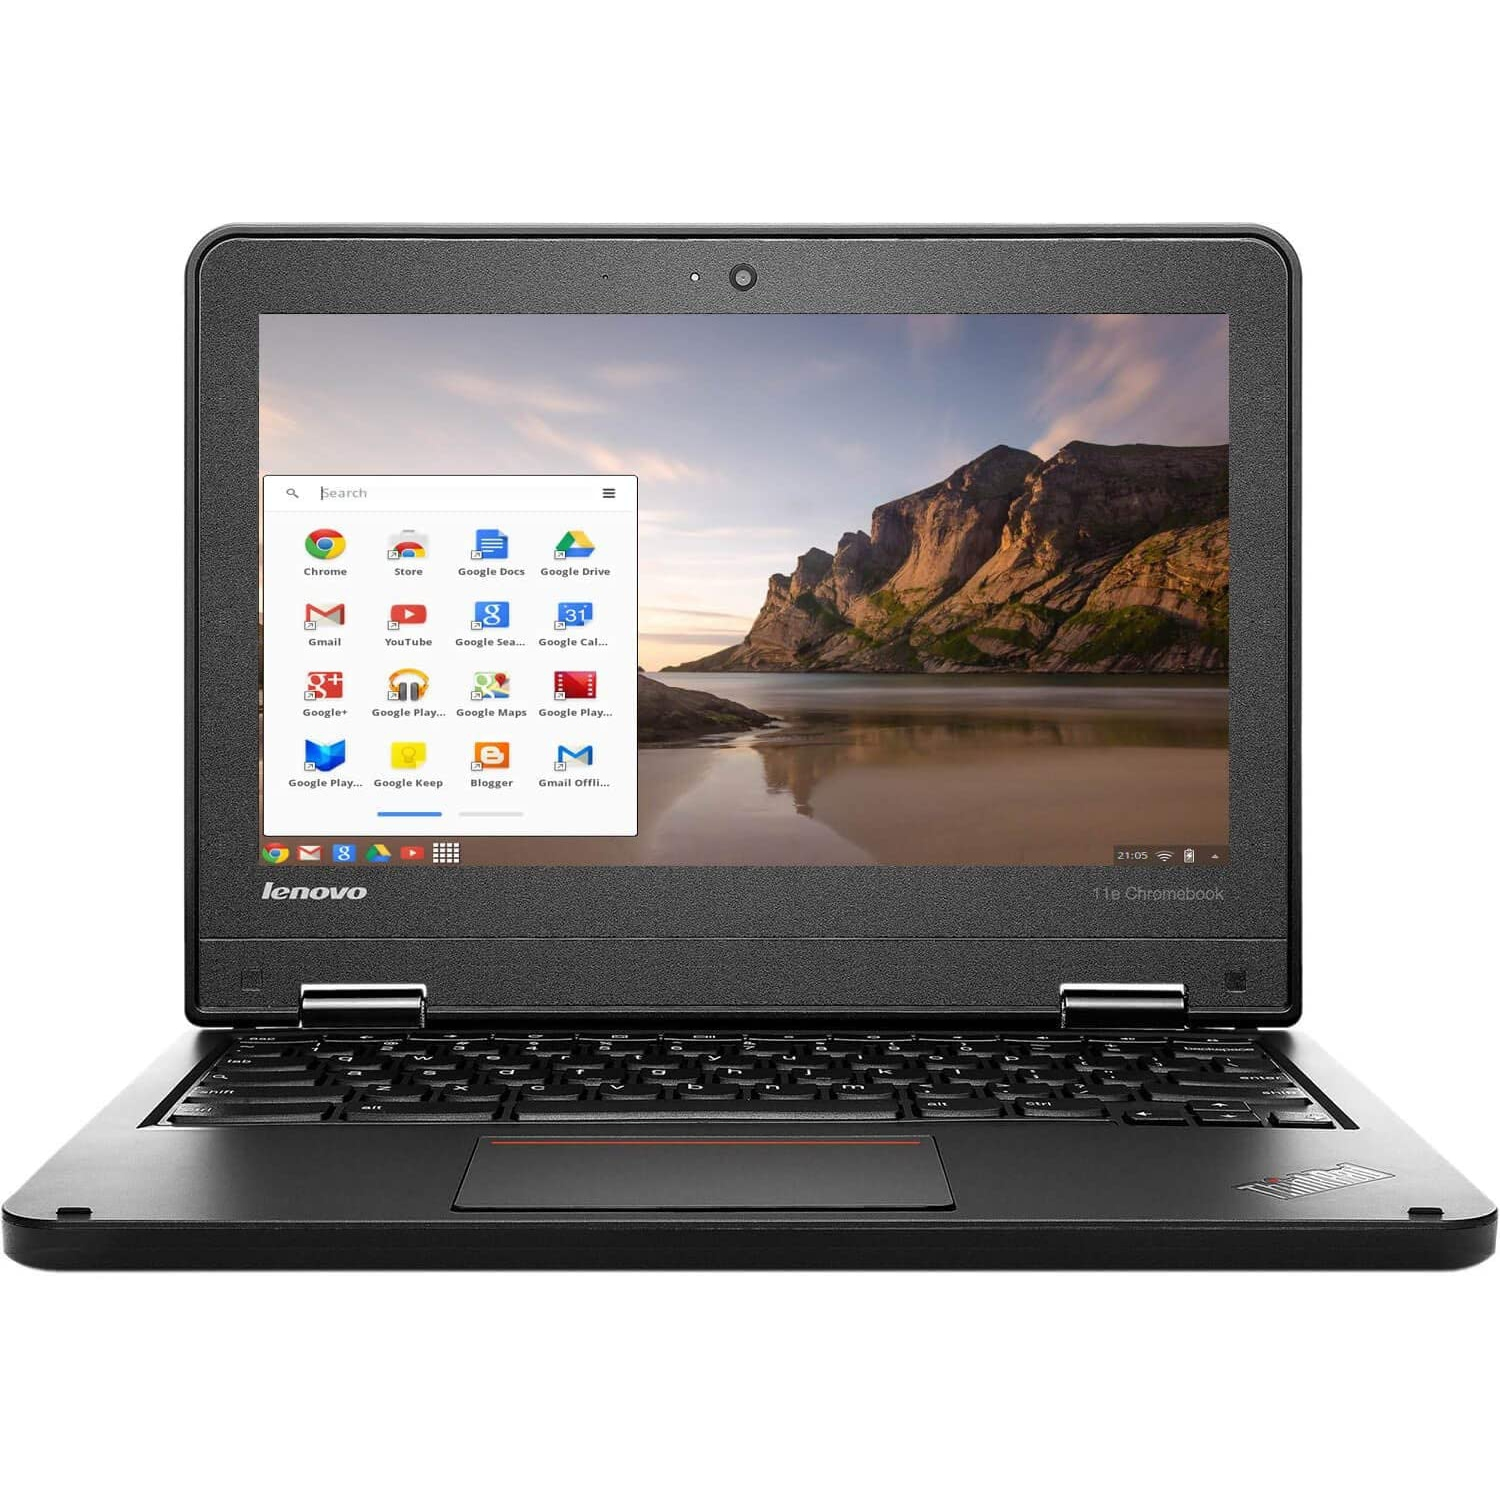 REFURB Lenovo Thinkpad 11e 20GF0001US Chromebook , Intel Celeron N3150 1.6Ghz , 4GB LPDDR3 Memory , 16GB eMMC , 11.IN Screen, Webcam Chrome OS - 1 Year warranty $179.99 in store only! Please call or email to order